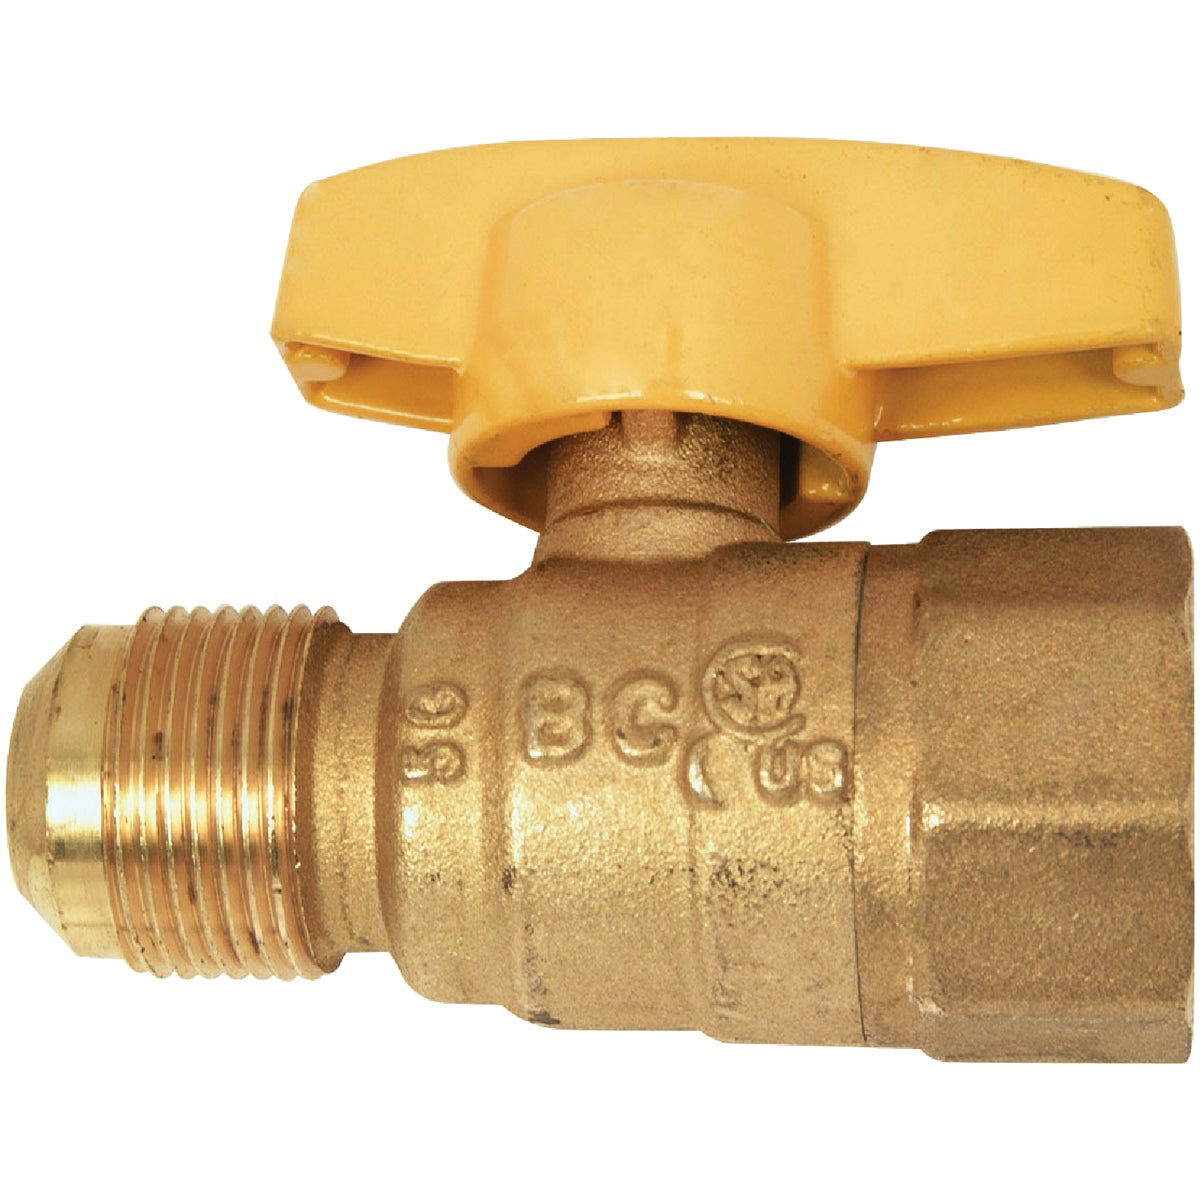 5/8X1/2 GAS VALVE - PSSC-68 by Brass Craft